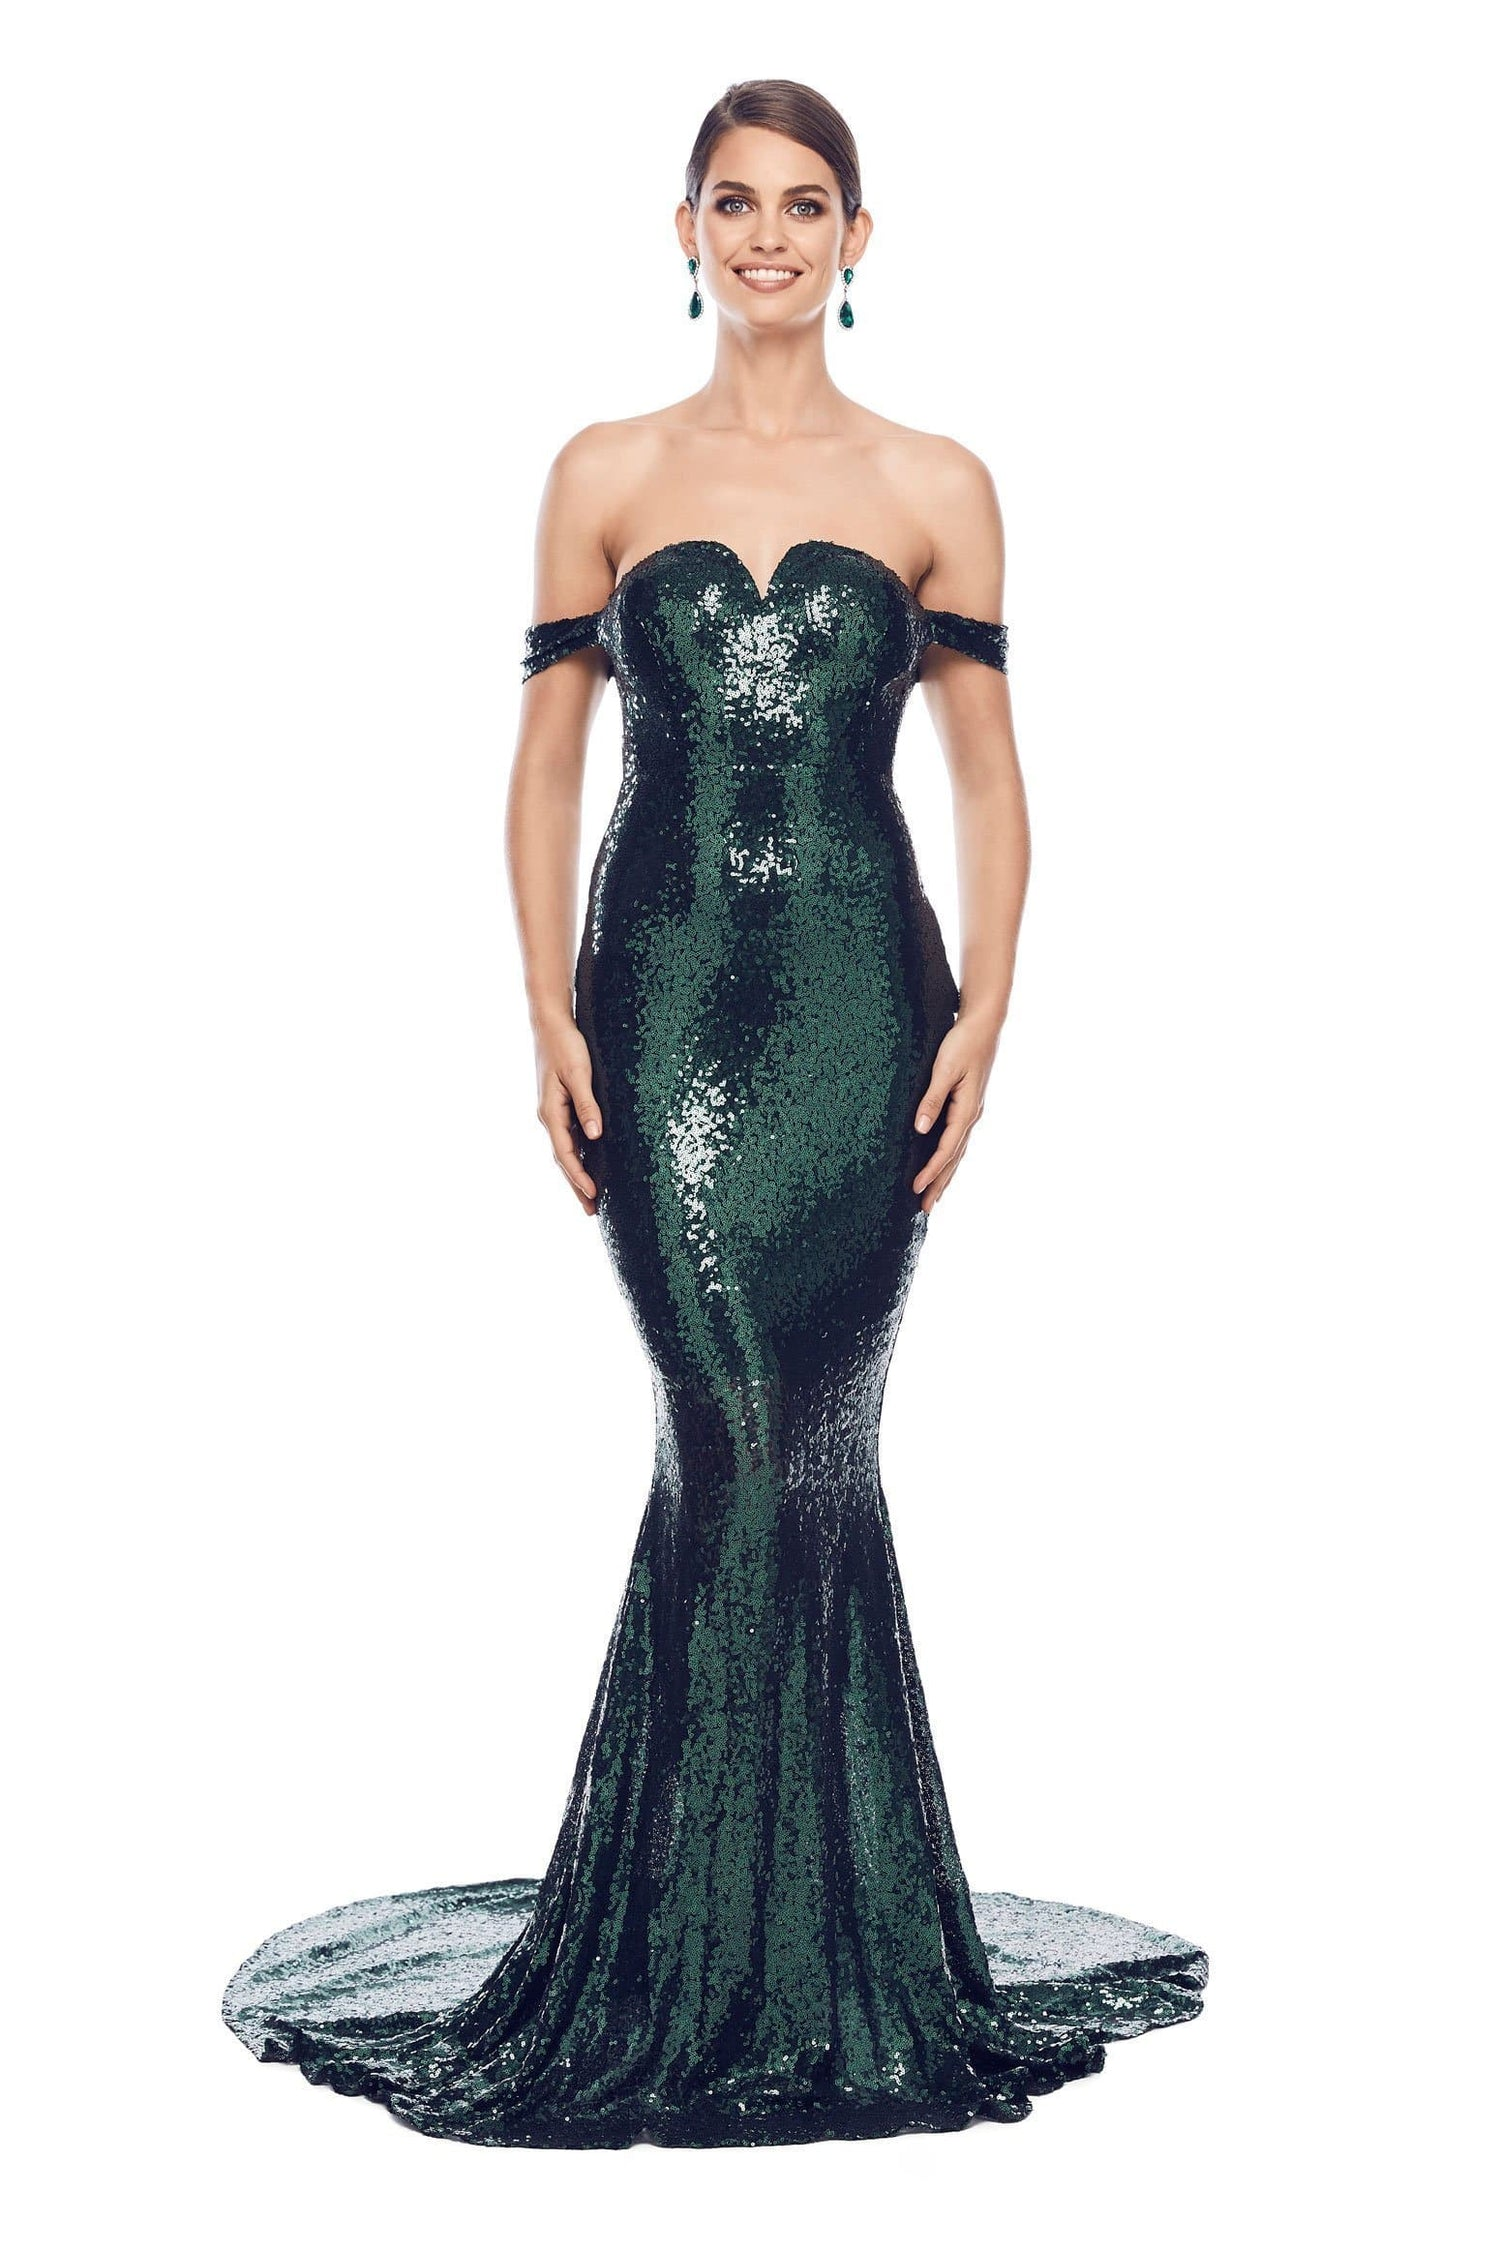 Jonquille - Emerald Sequin Gown with Draping Off Shoulder Straps